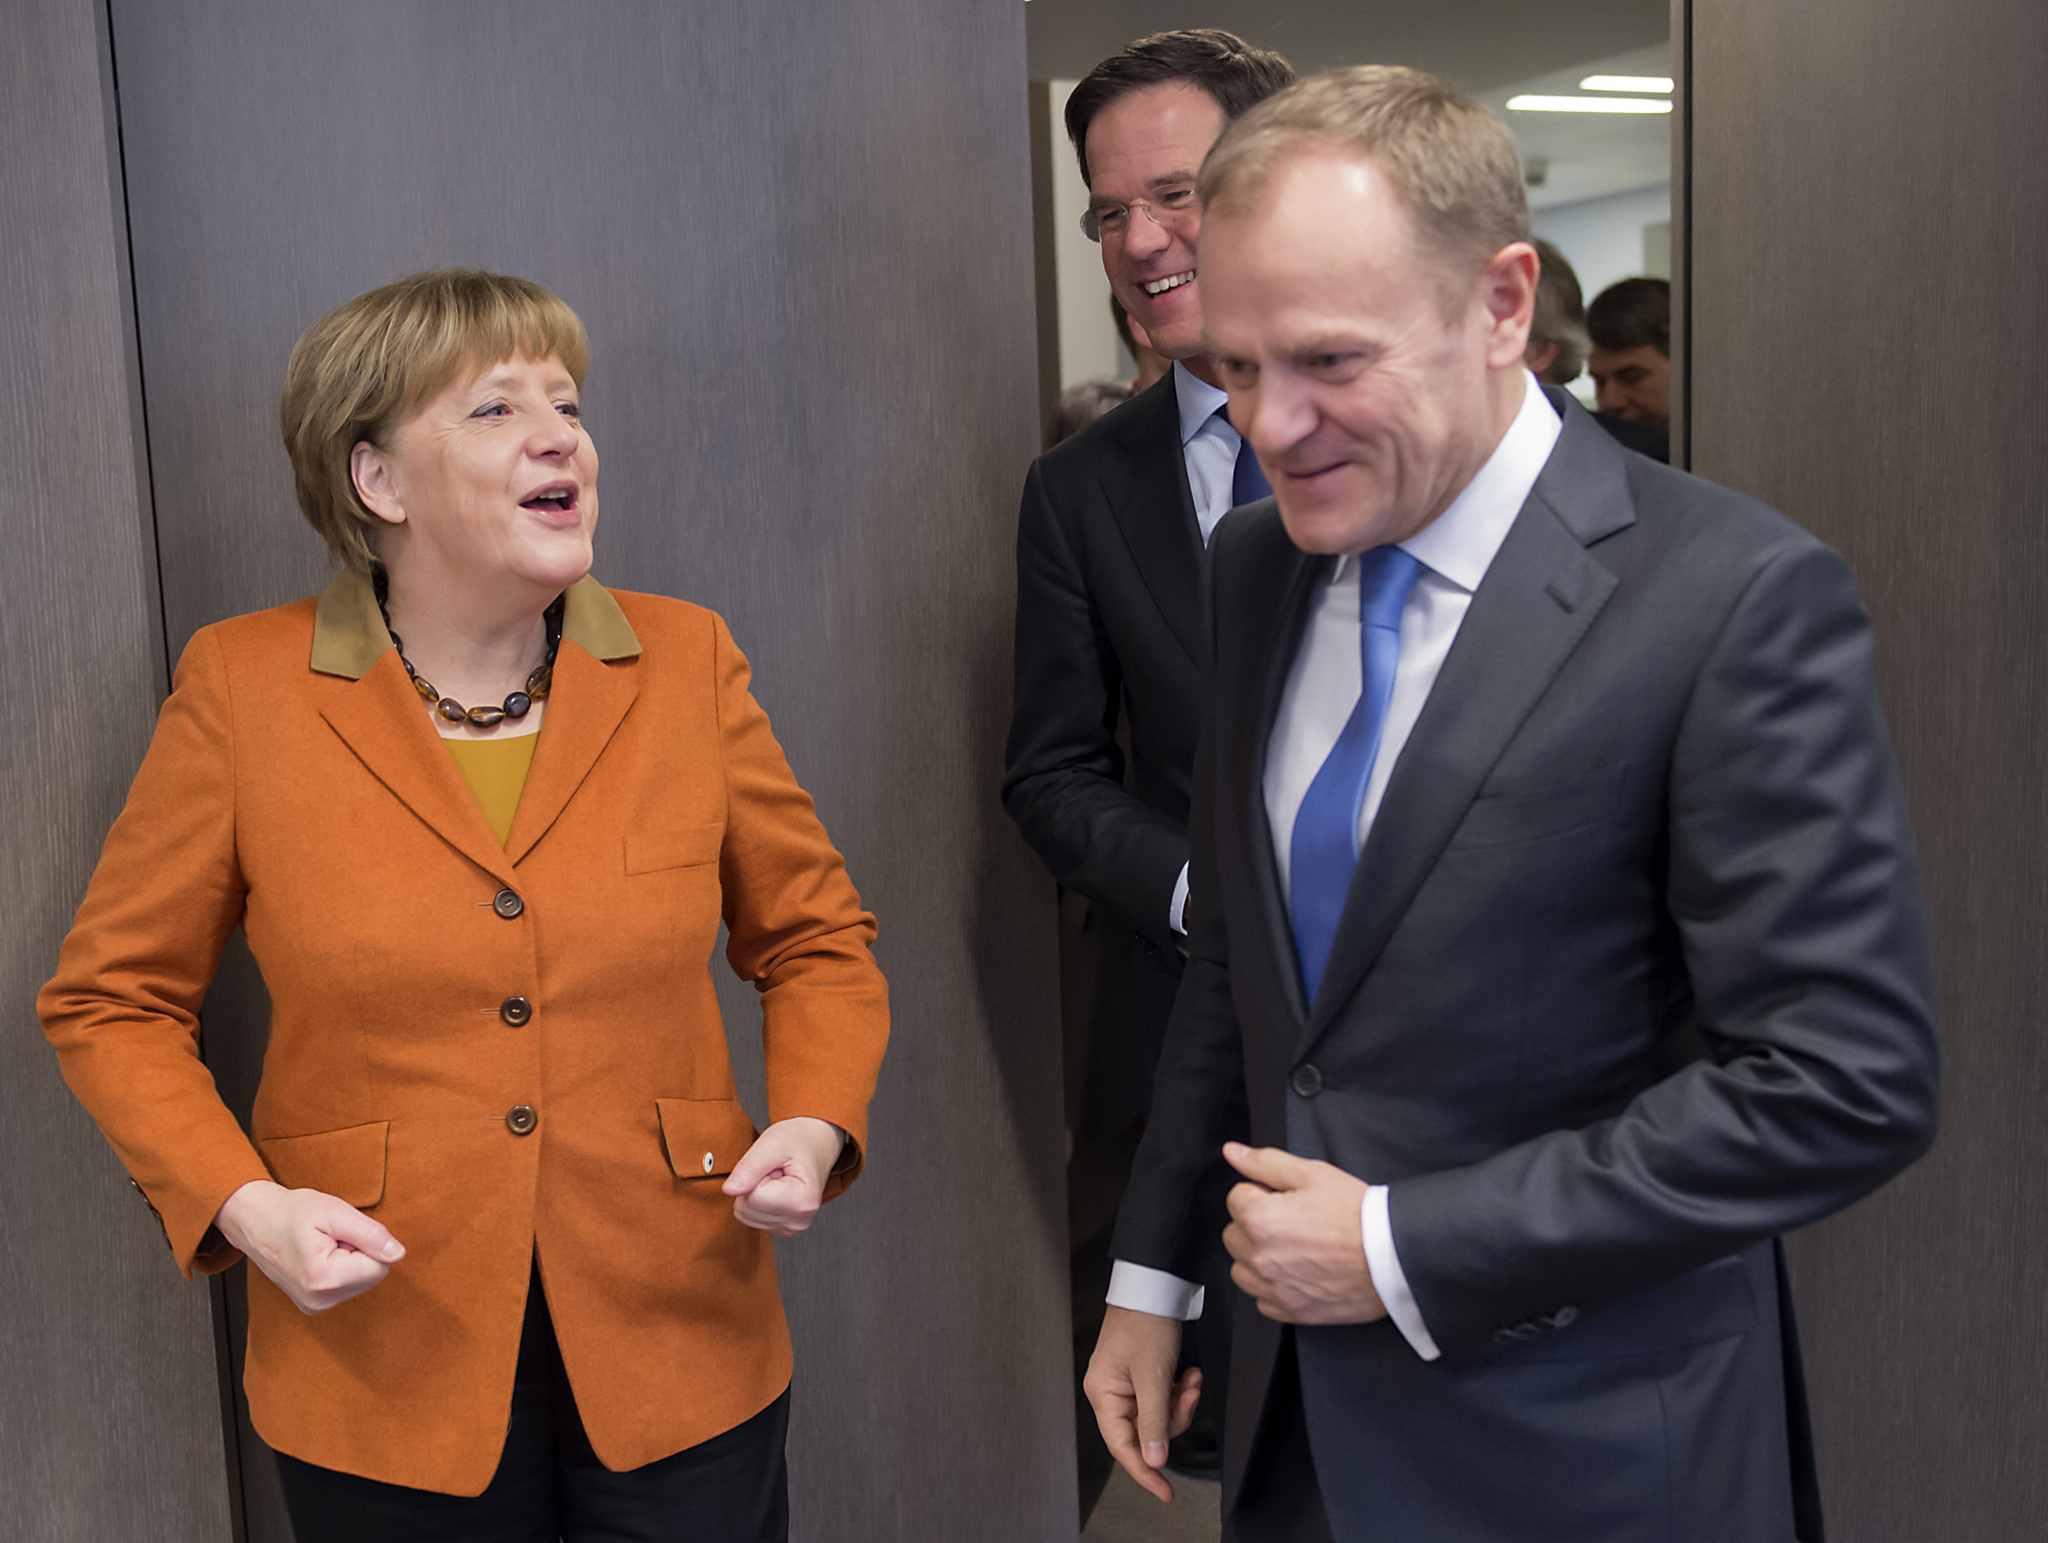 German Chancellor Angela Merkel, left, speaks with European Council President Donald Tusk, right, during a meeting on the sidelines of an EU summit in Brussels on Monday, March 7, 2016. European Union leaders are holding a summit in Brussels on Monday with Turkey to discuss the current migration crisis.